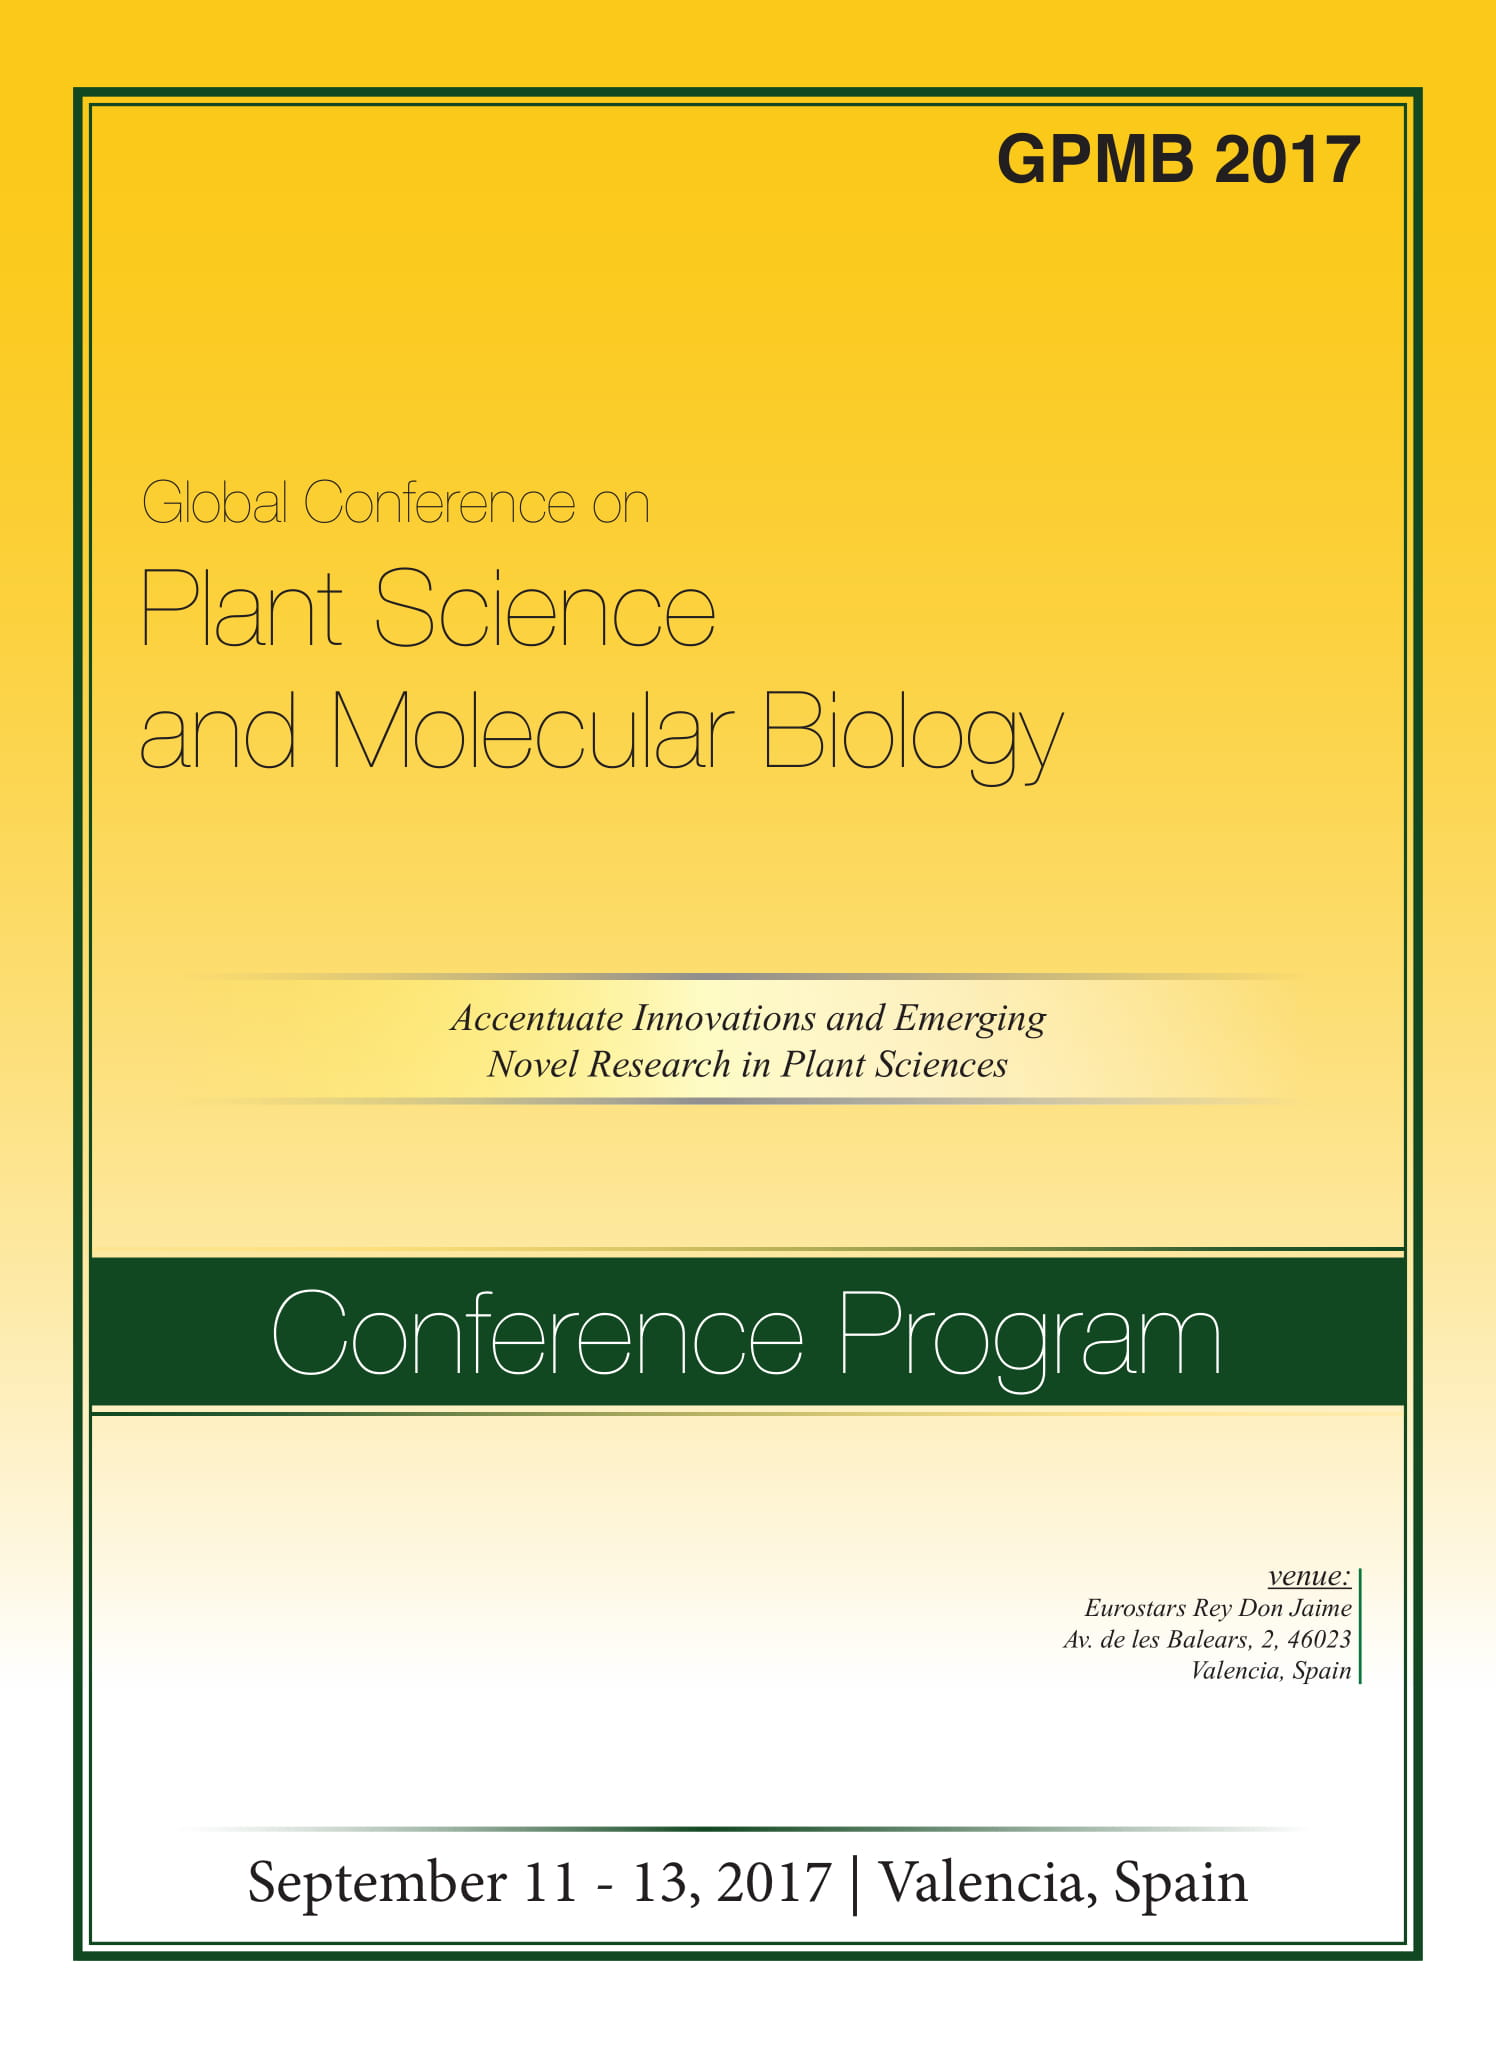 Global Conference on Plant Science and Molecular Biology | Valencia, Spain Program